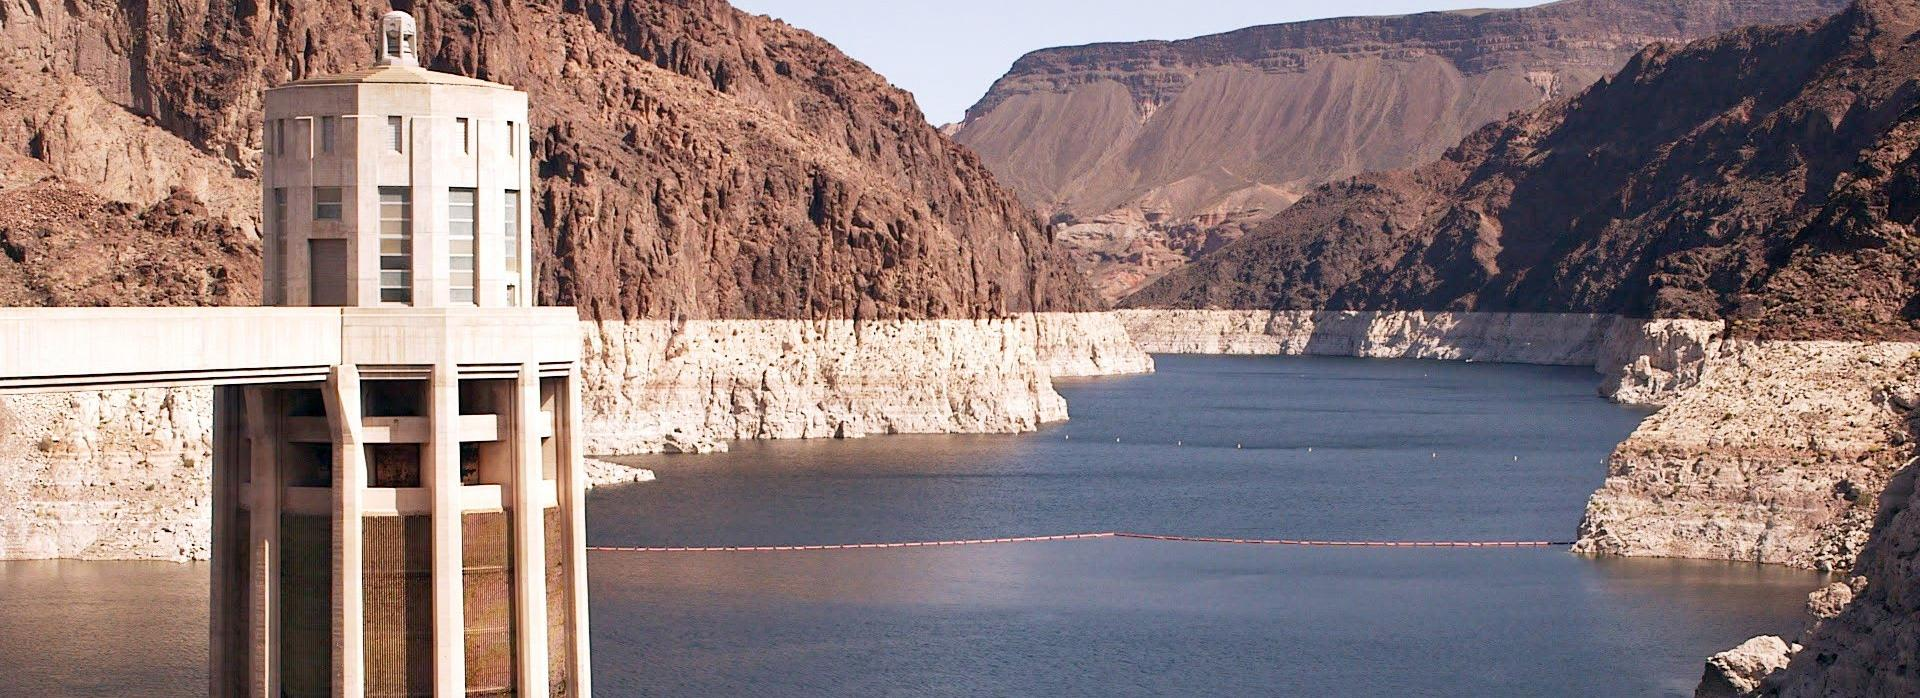 Article banner - Lake Mead Light